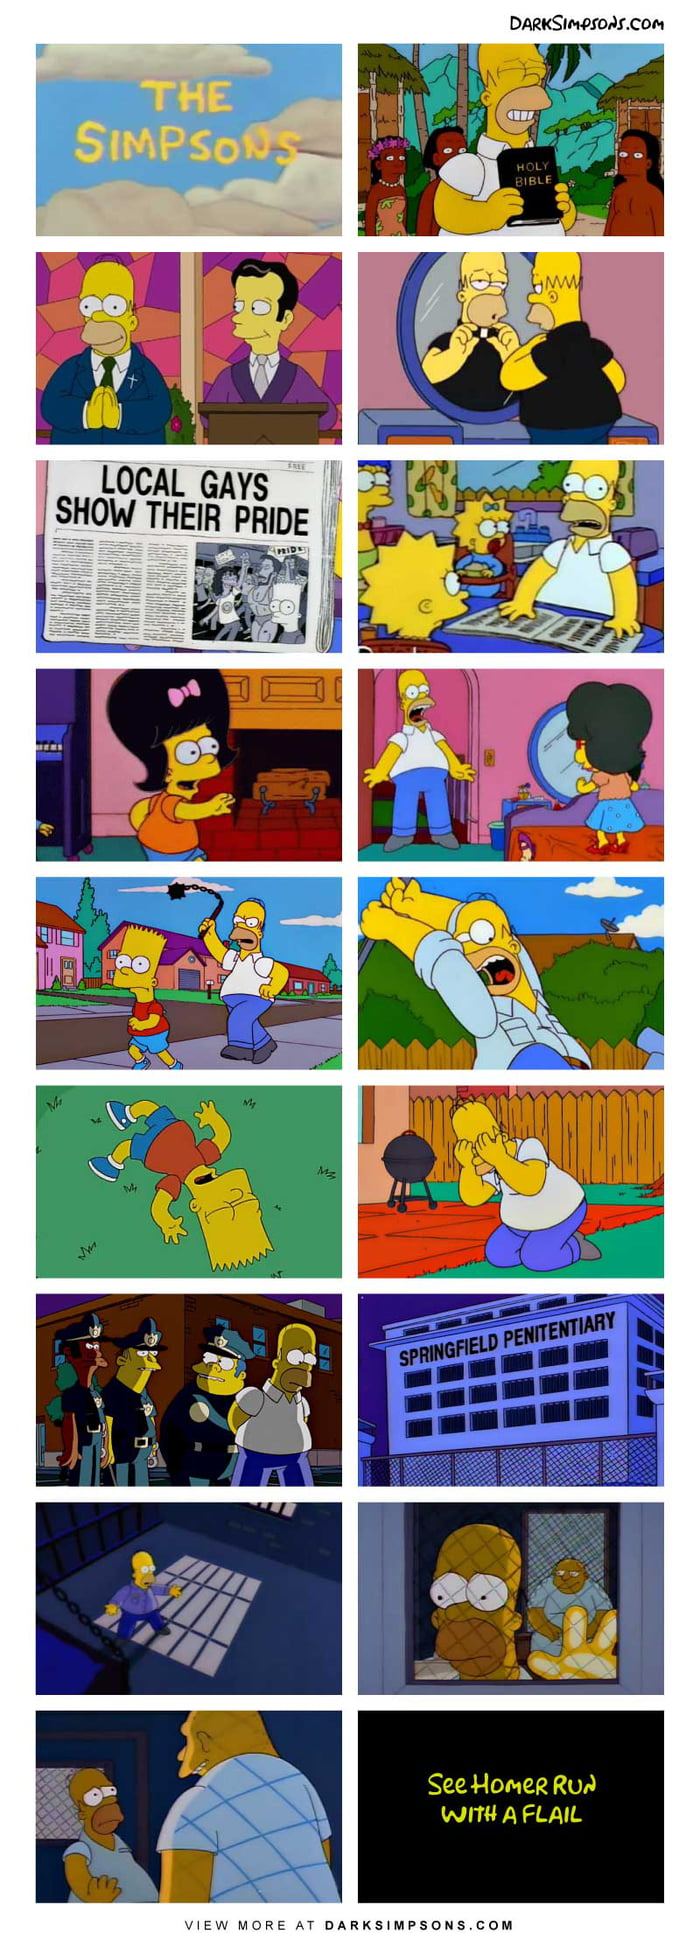 Homer: I'm not gay, but I'll learn.